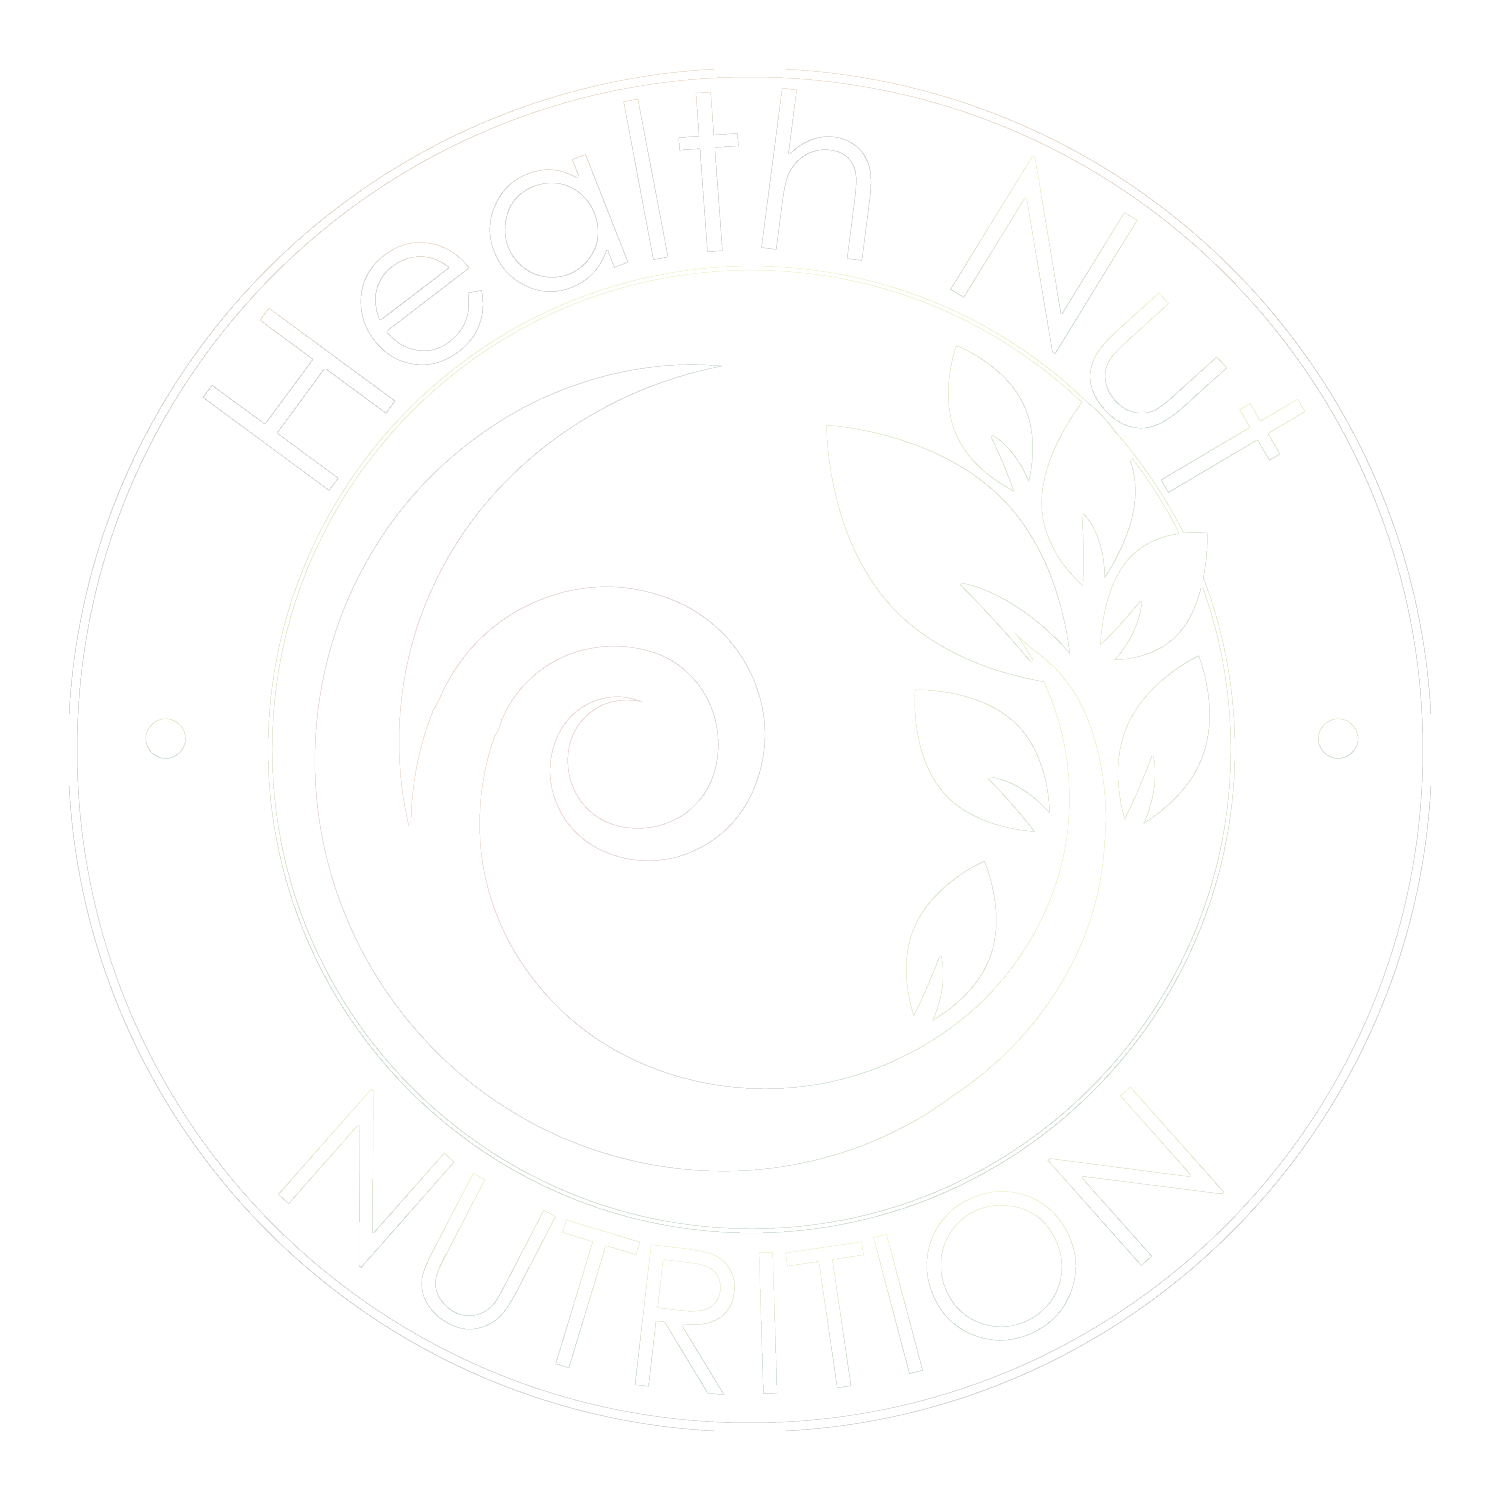 Health Nut Nutrition